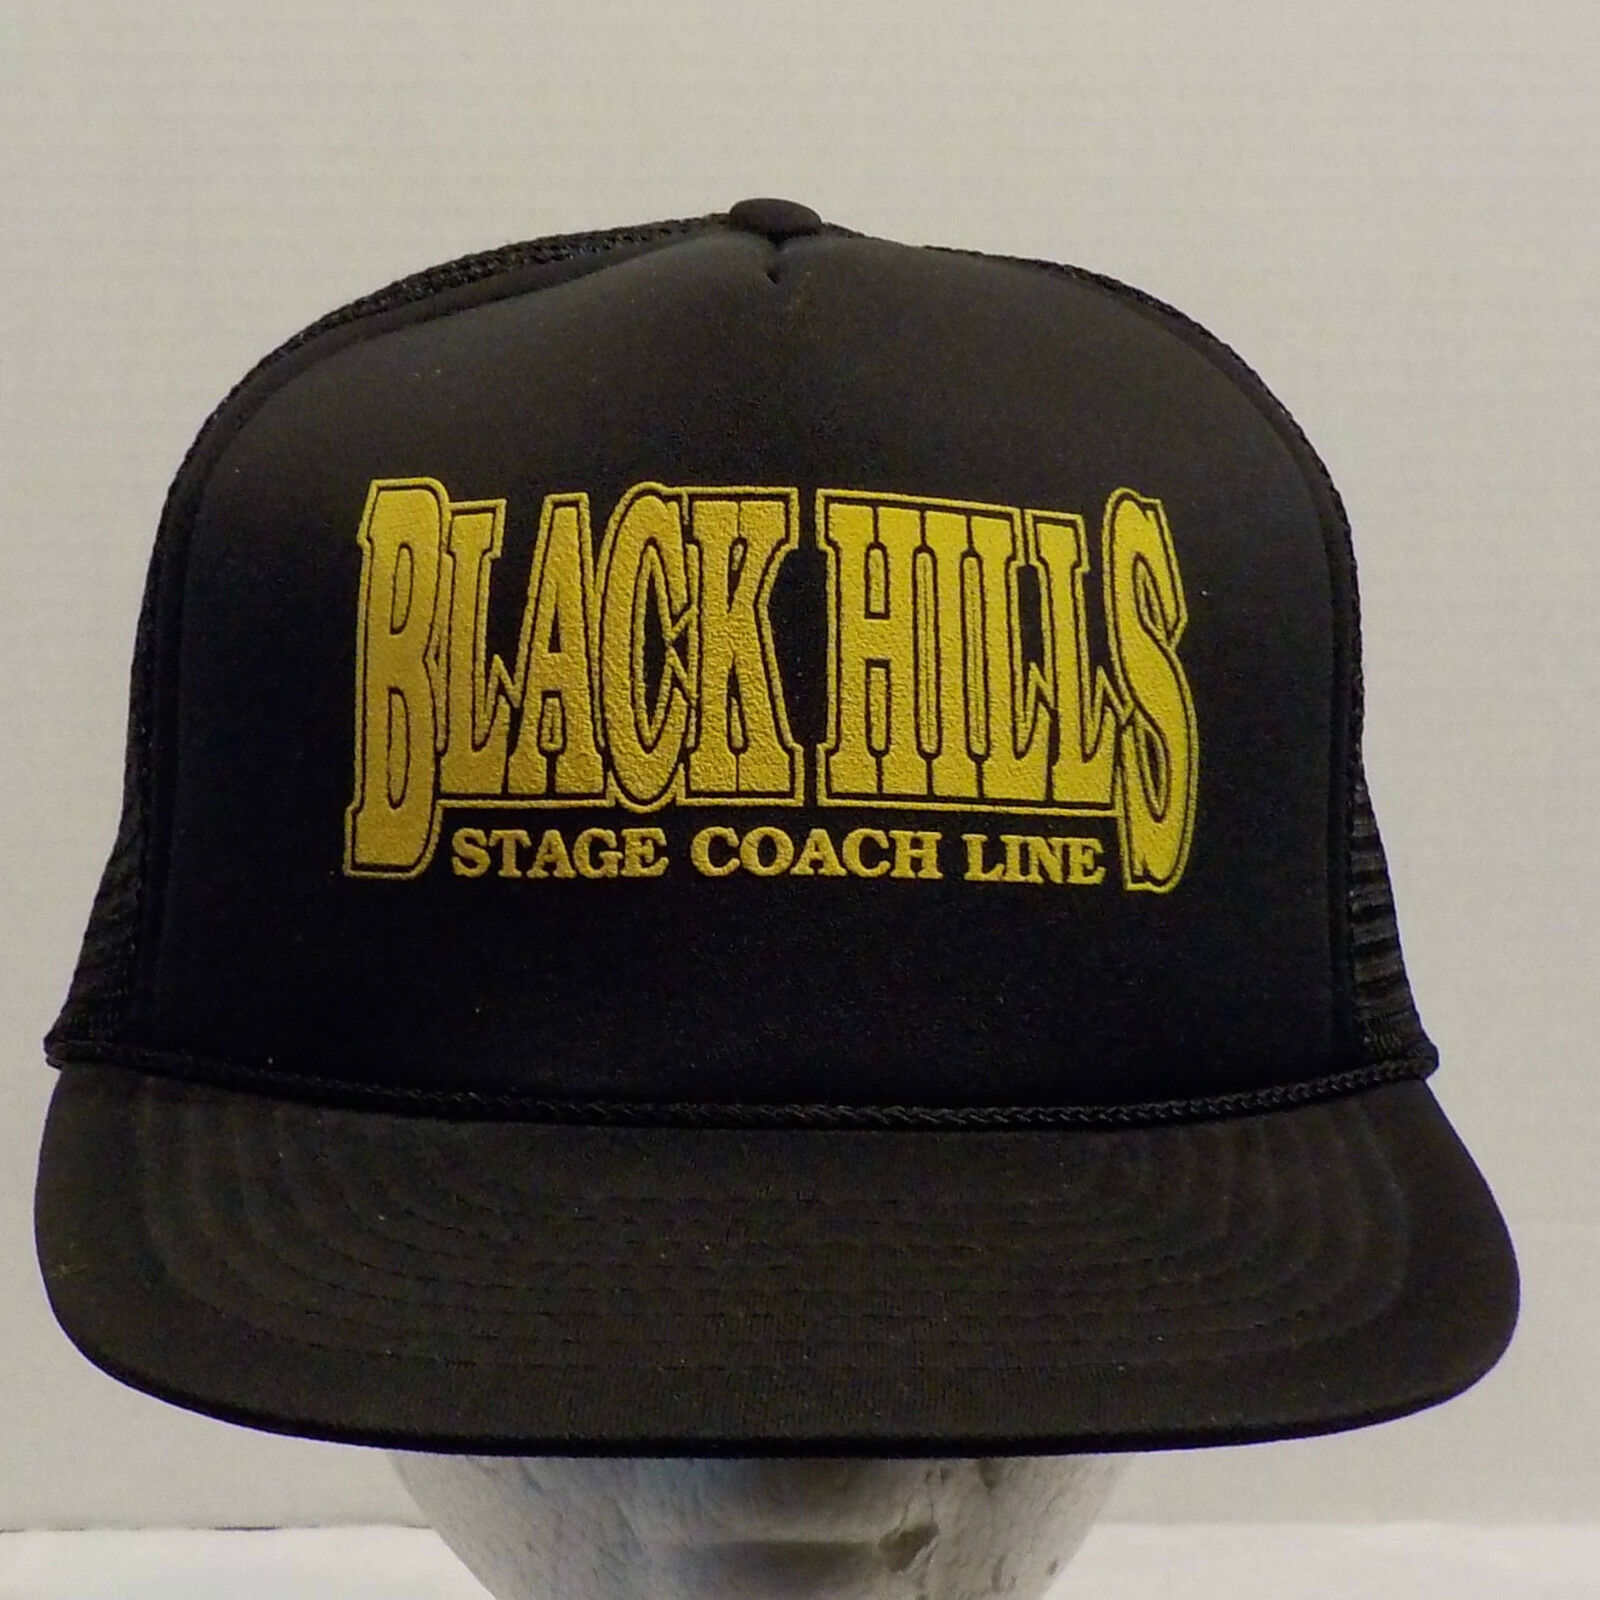 Black Snap Hills Stage Coach Lines Snap Black Back Truckers Dad Hat Baseball Cap a527ee